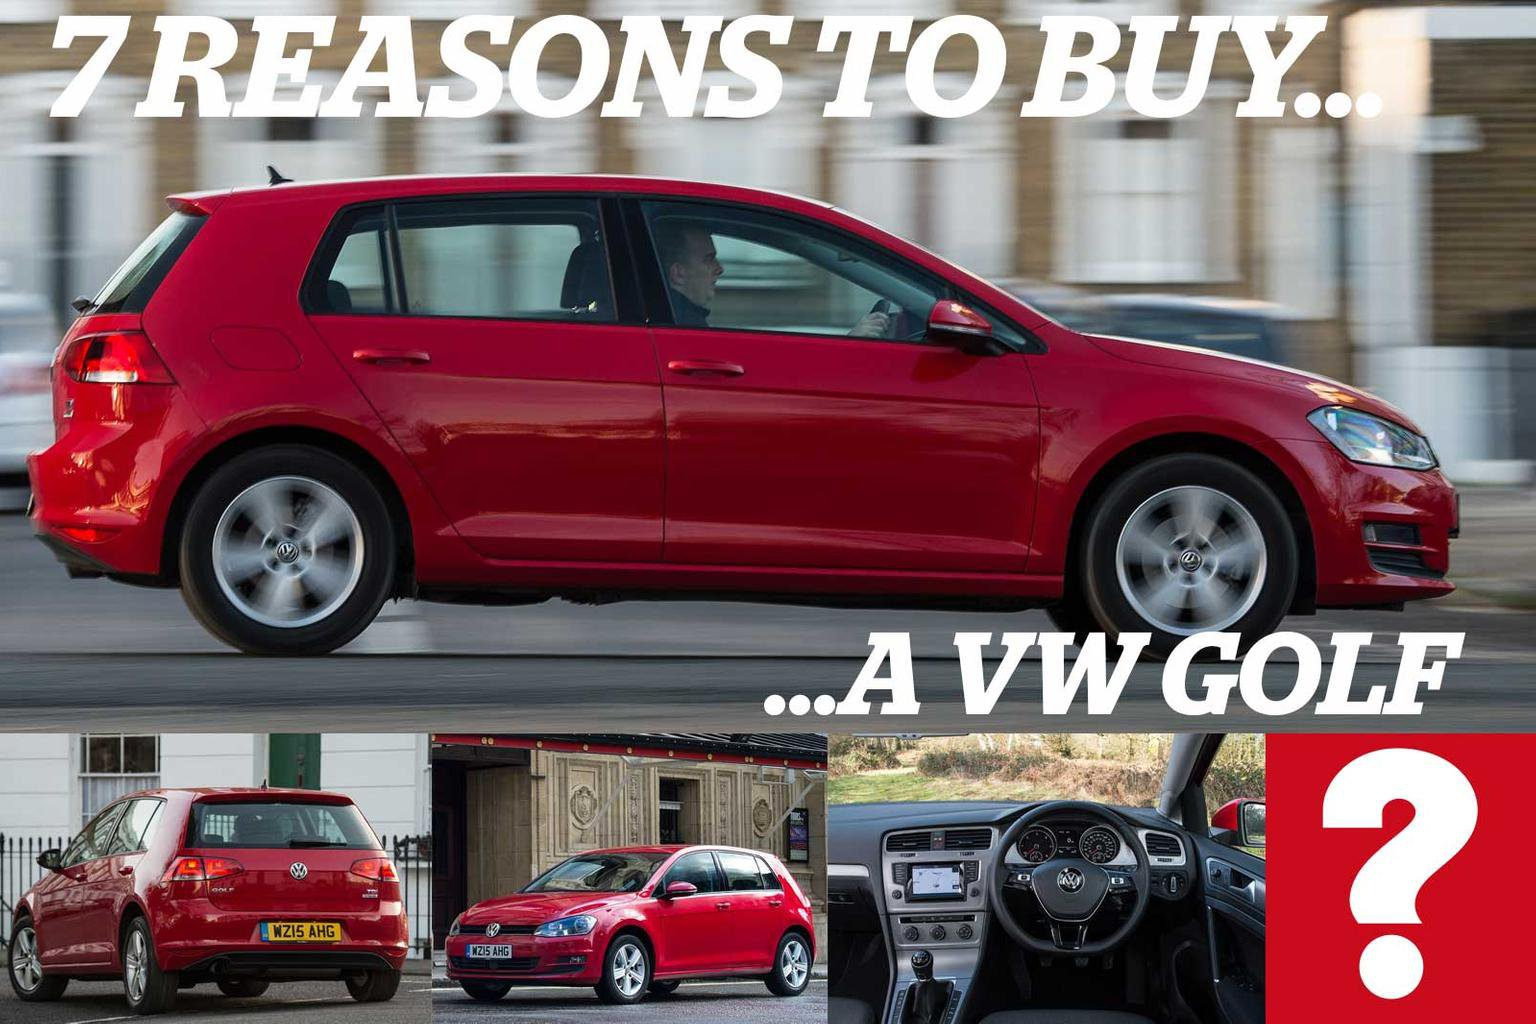 7 reasons to buy a VW Golf